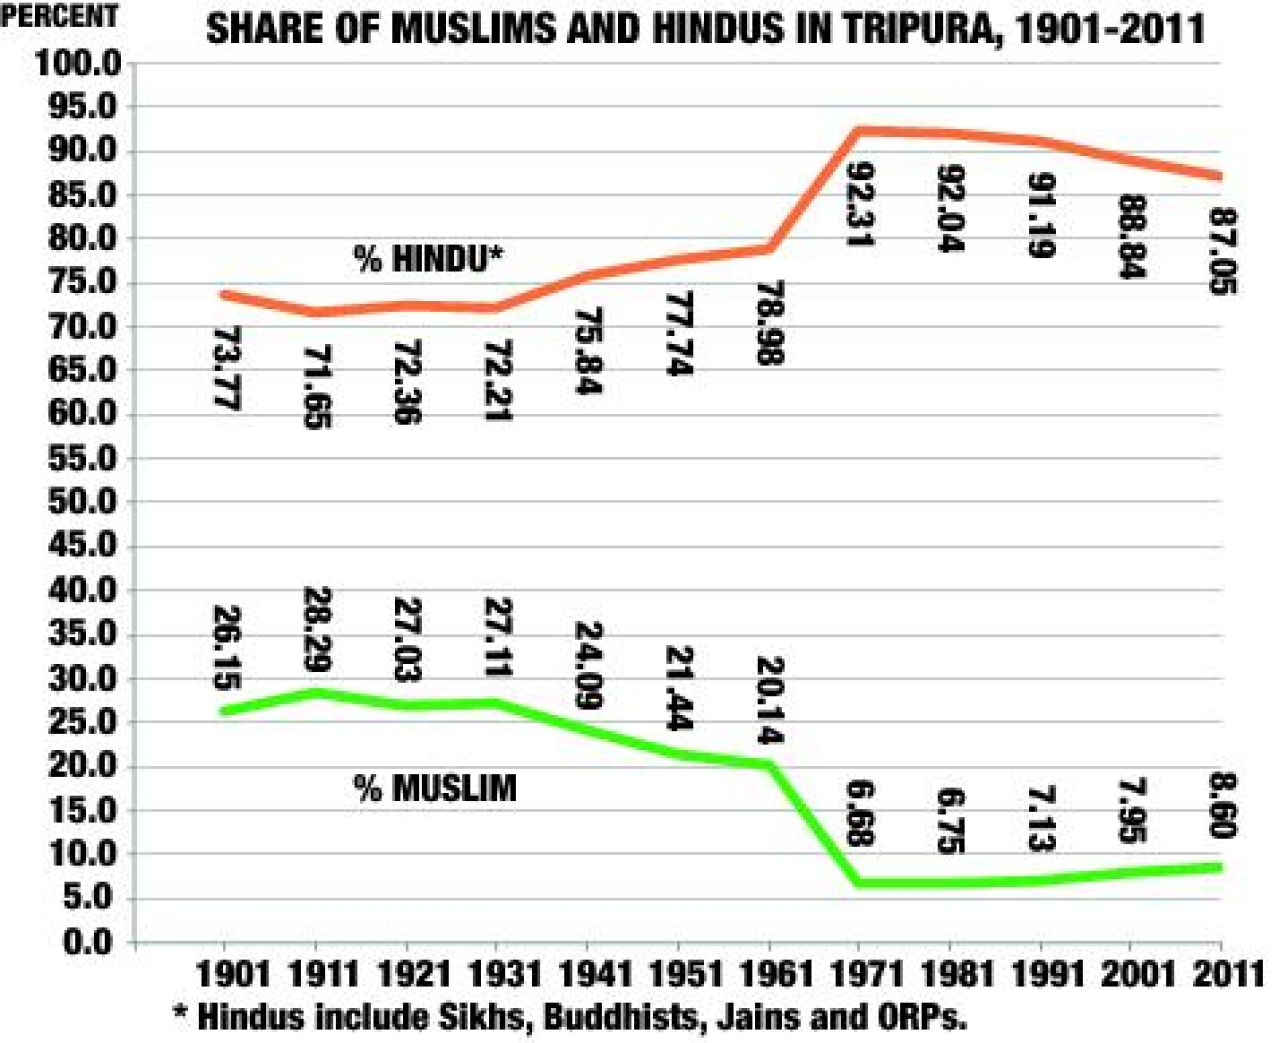 Share of Muslims and Hindus in Tripura.